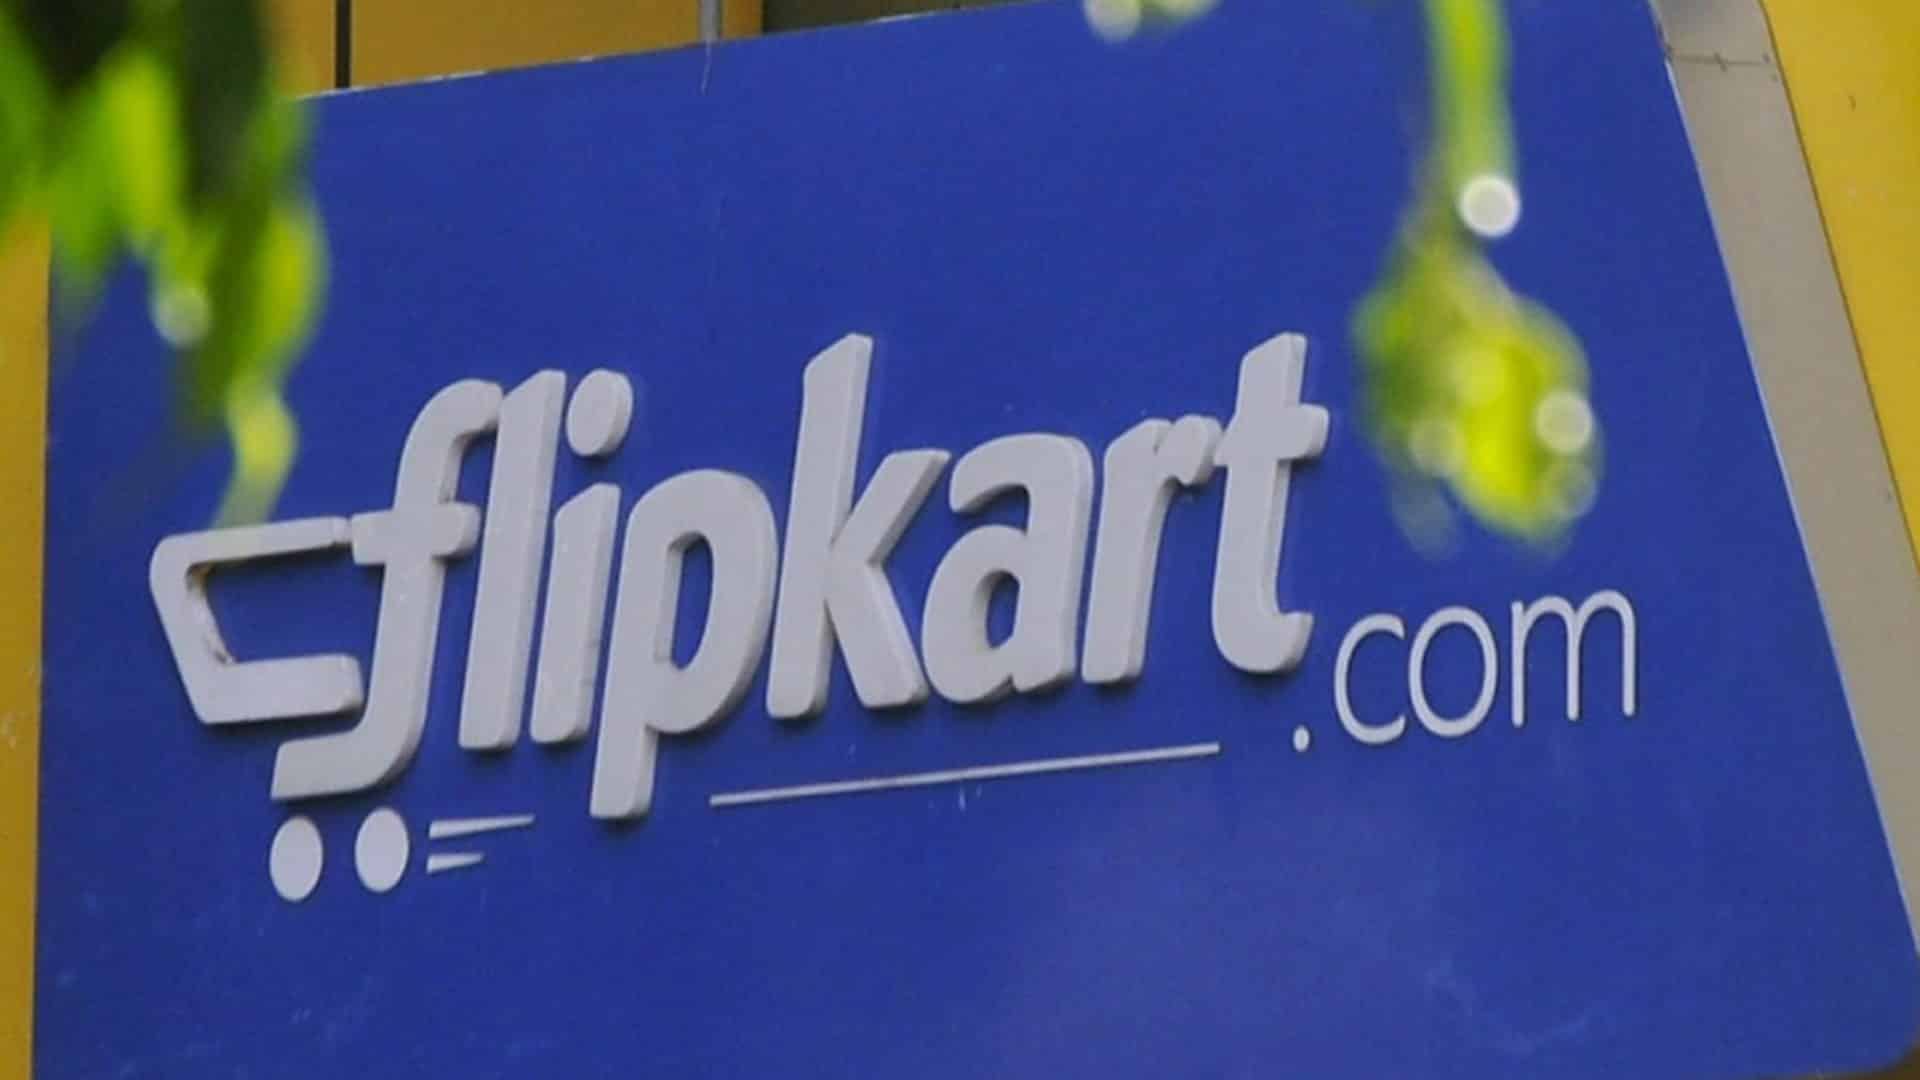 Flipkart partners with Adani Logistics to strengthen supply chain infra